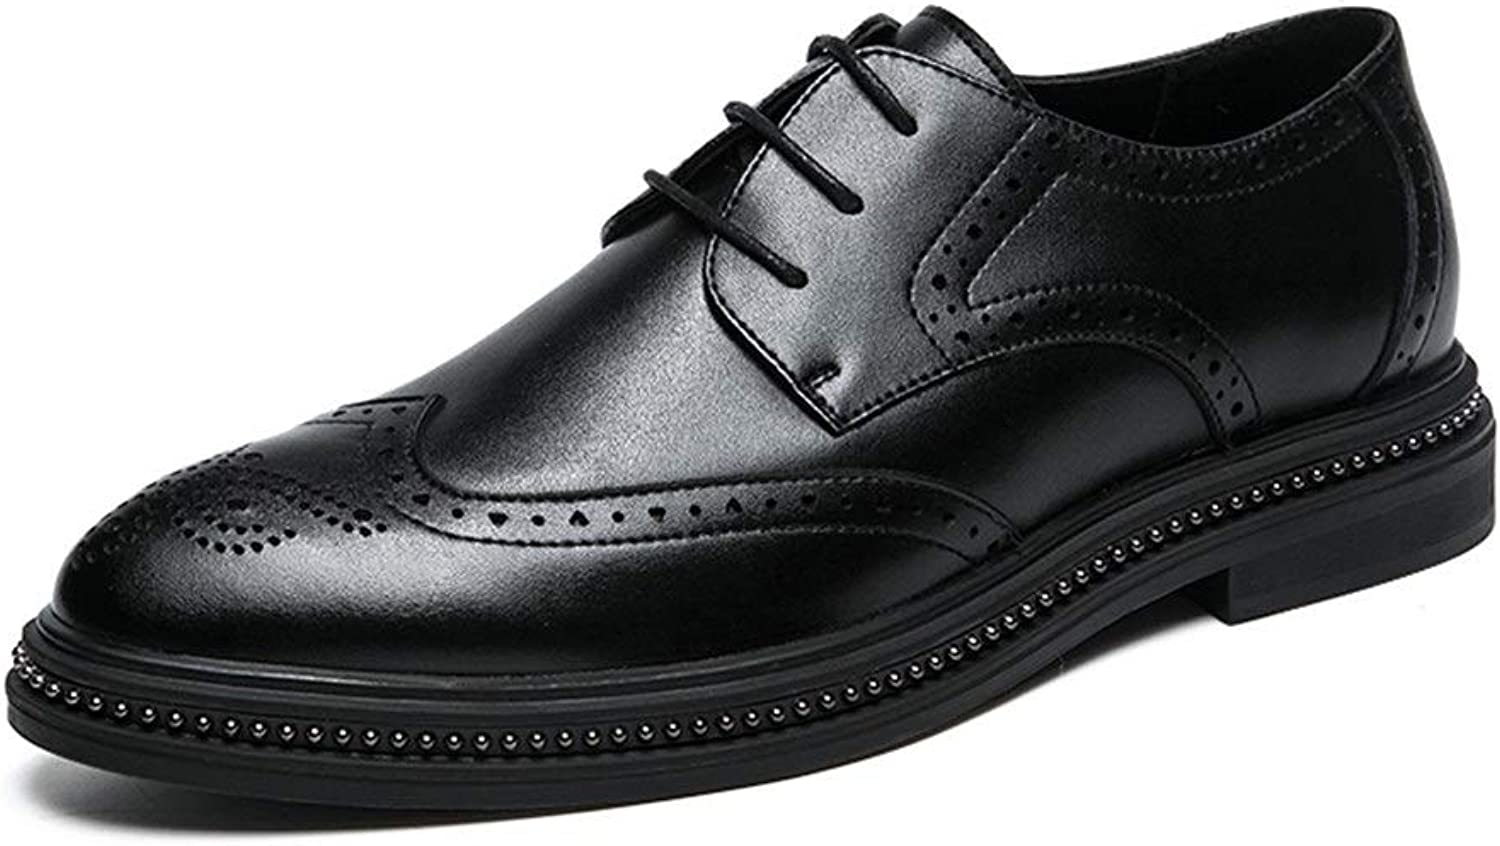 WUJIEXIAN-JXL Oxford shoes for Men Brogue shoes Lace Up Style Microfiber Leather Retro Casual Classical Graven Casual shoes